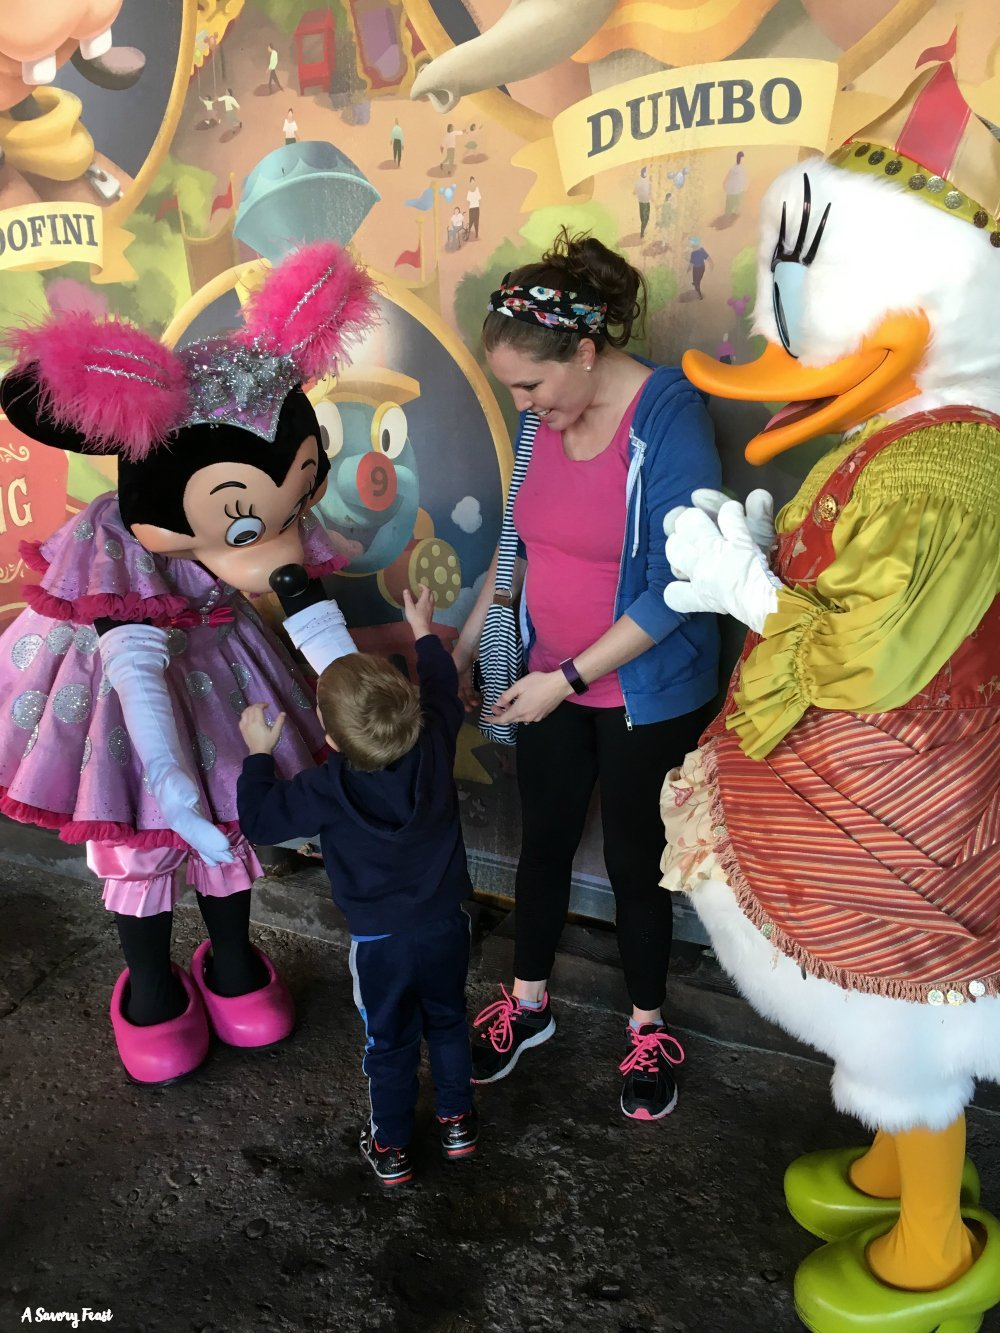 Meeting Disney Characters with a Toddler